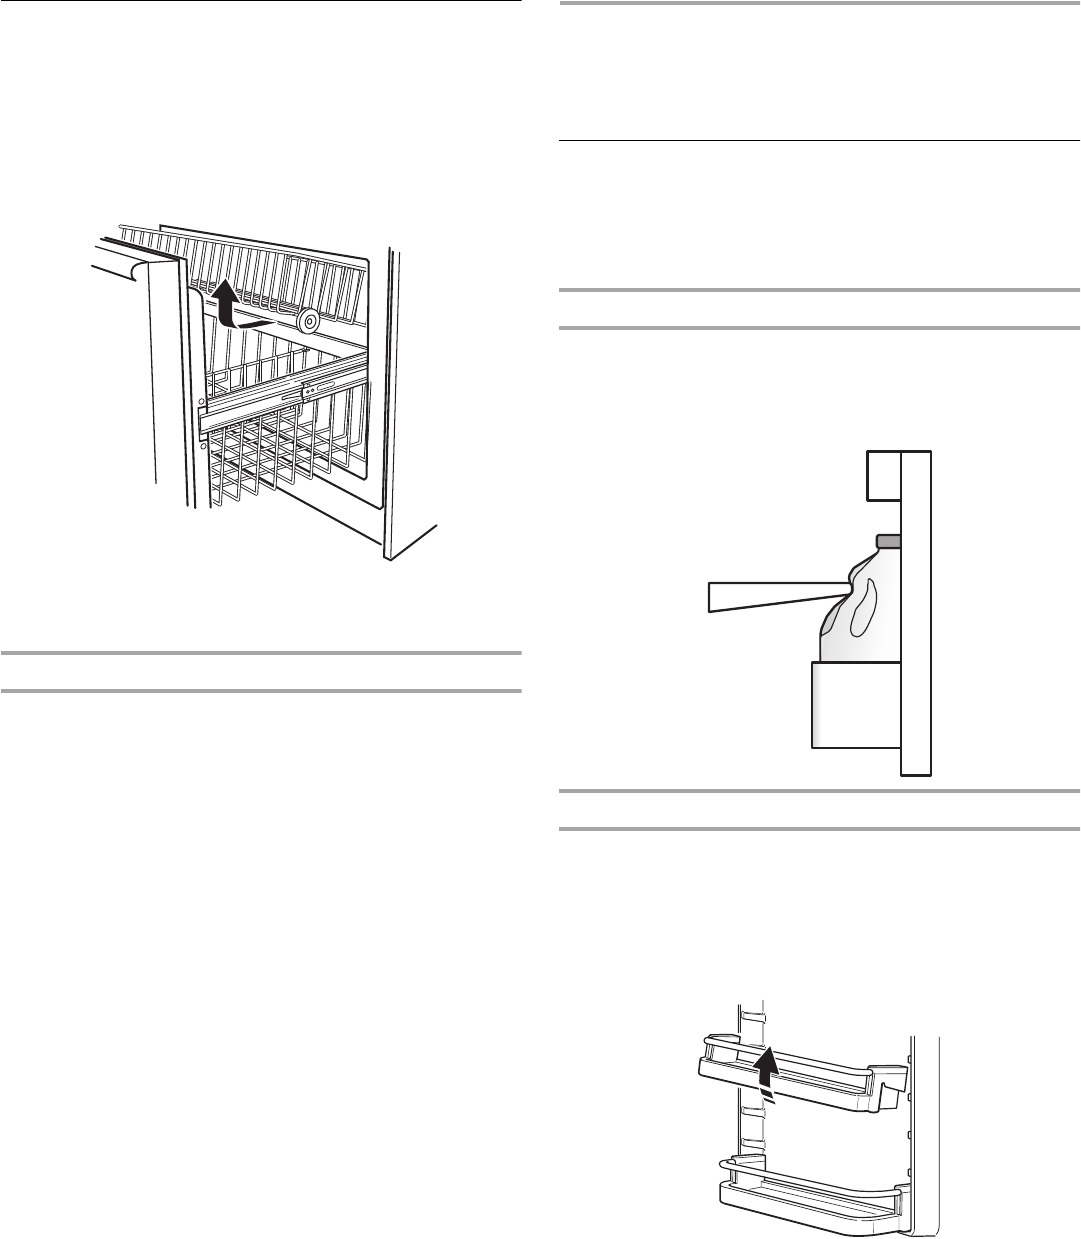 page 44 of kitchenaid refrigerator gt1shwxpq02 user guide